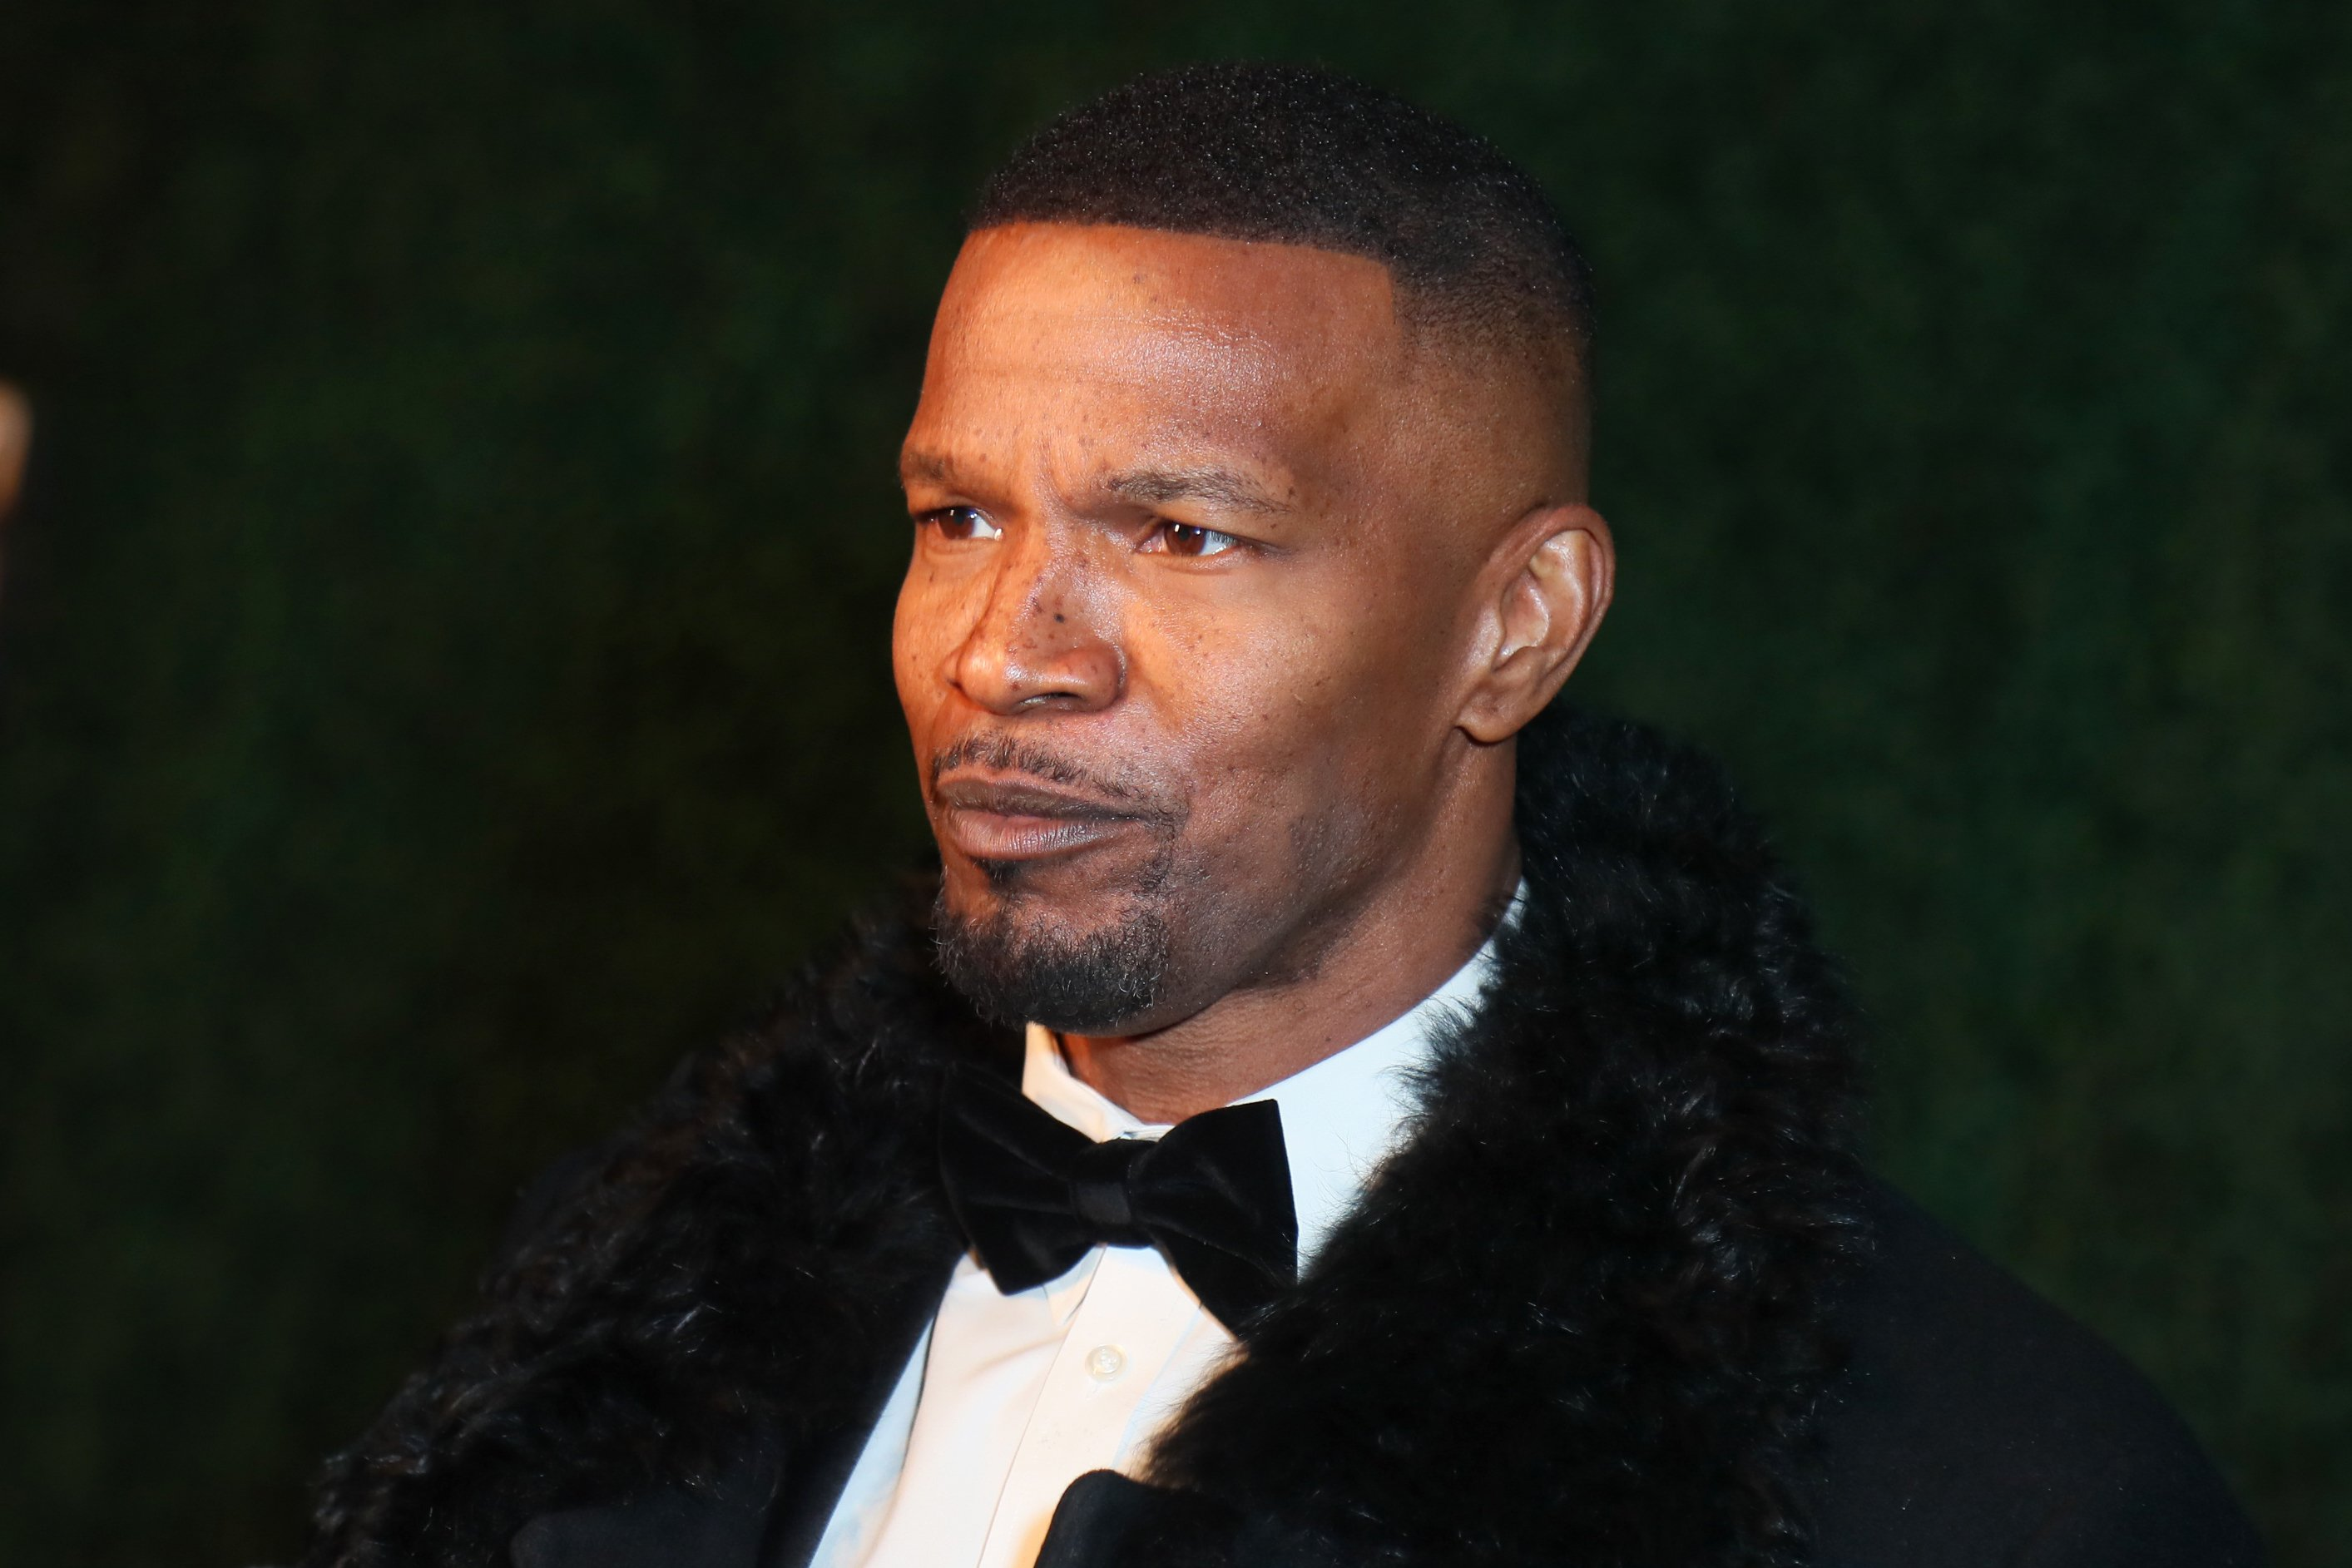 Actor Jamie Foxx finds himself at the center of rumors linking him to women following his split from Katie Holmes. | Photo: Getty Images